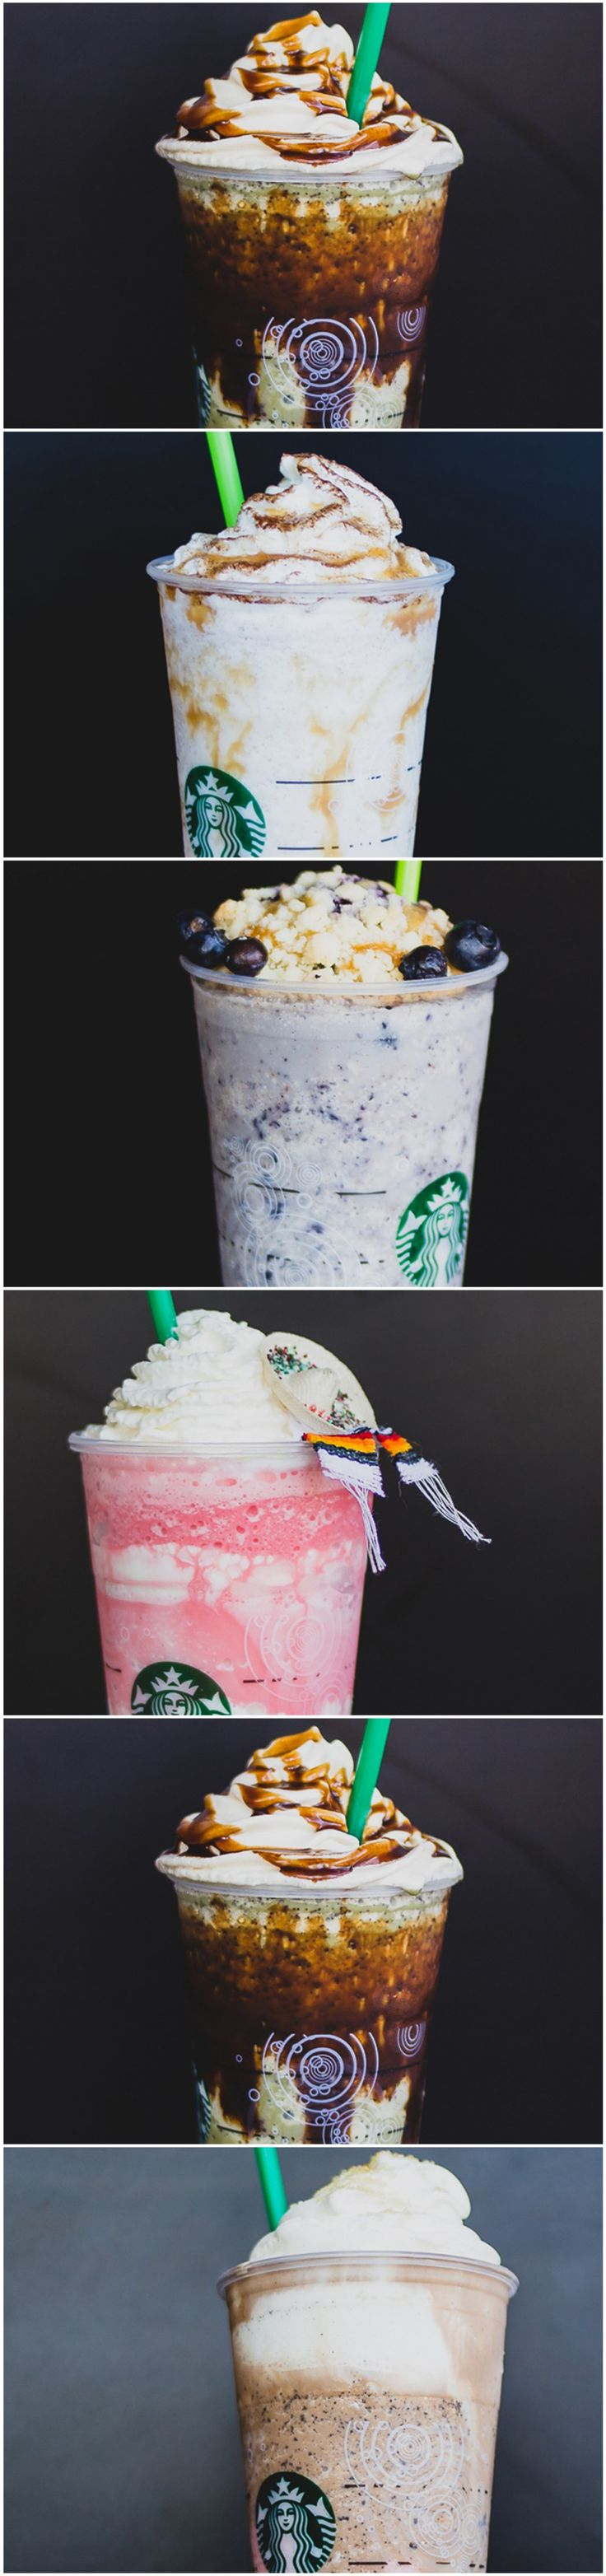 We asked a few different Starbucks baristas in Santa Ana, Calif., to surprise us recently — and the results were beautiful.